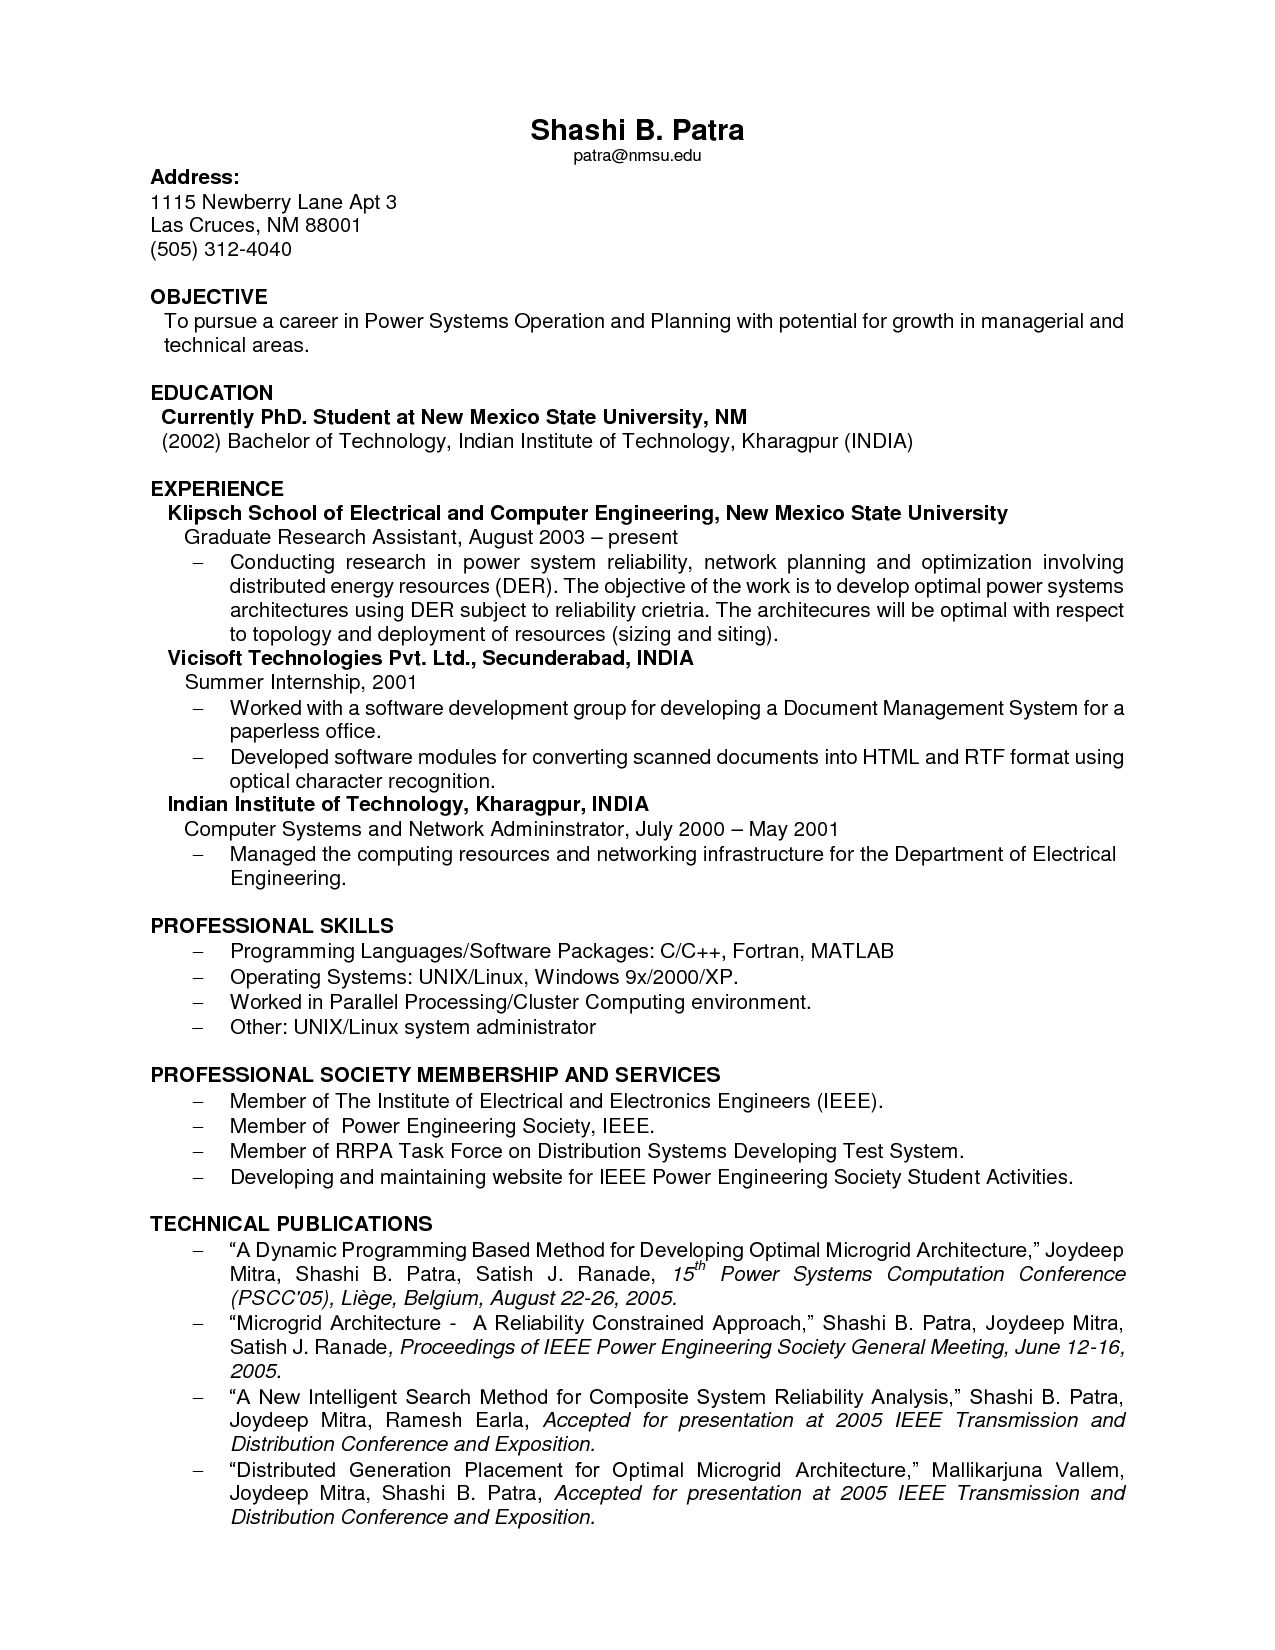 Resume Without Work Experience 15 Amazing How To Write A Resume Without Experience With Or No Work .